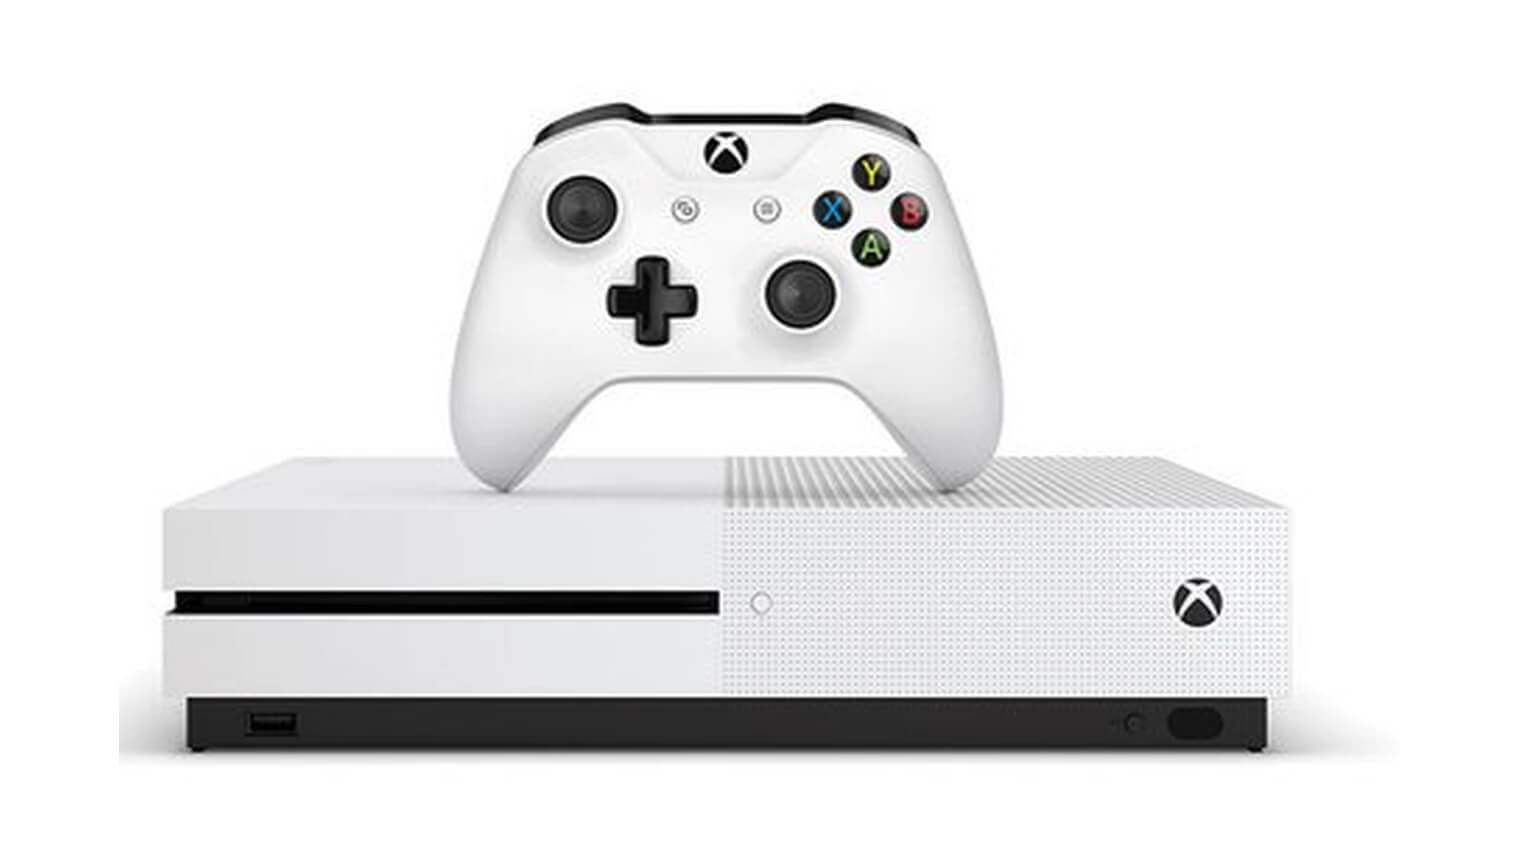 Xbox One S announced, 40% smaller than Xbox One